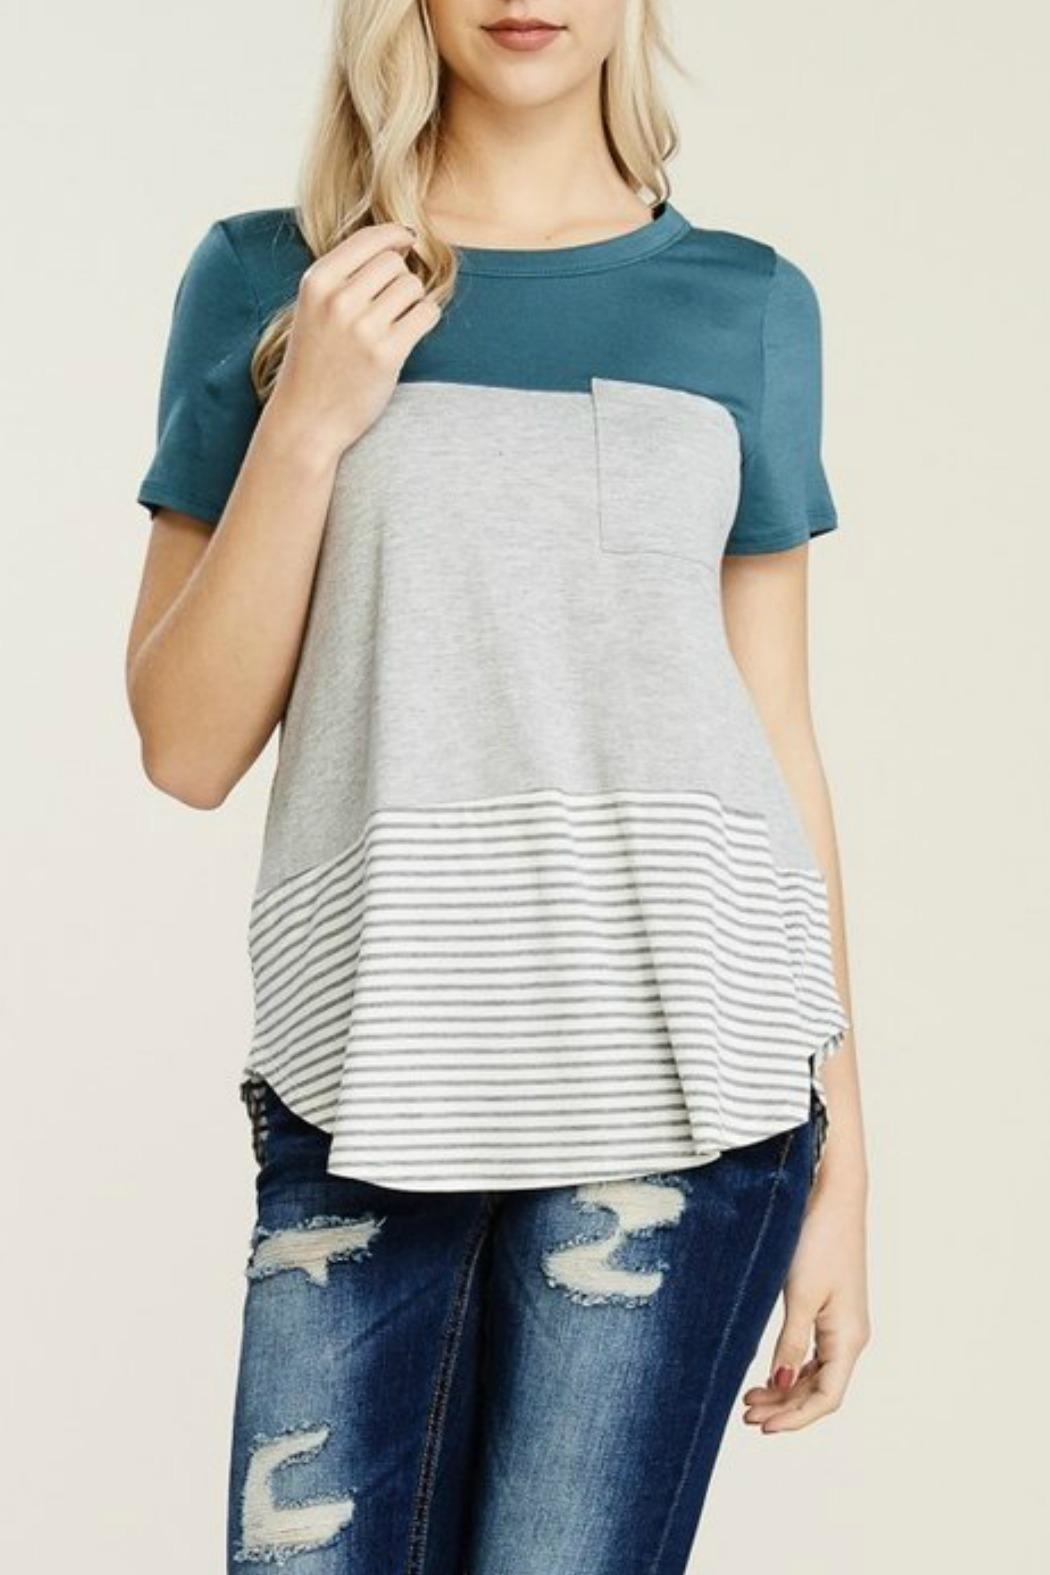 Papermoon Clothing Teal Colorblock Tee - Main Image